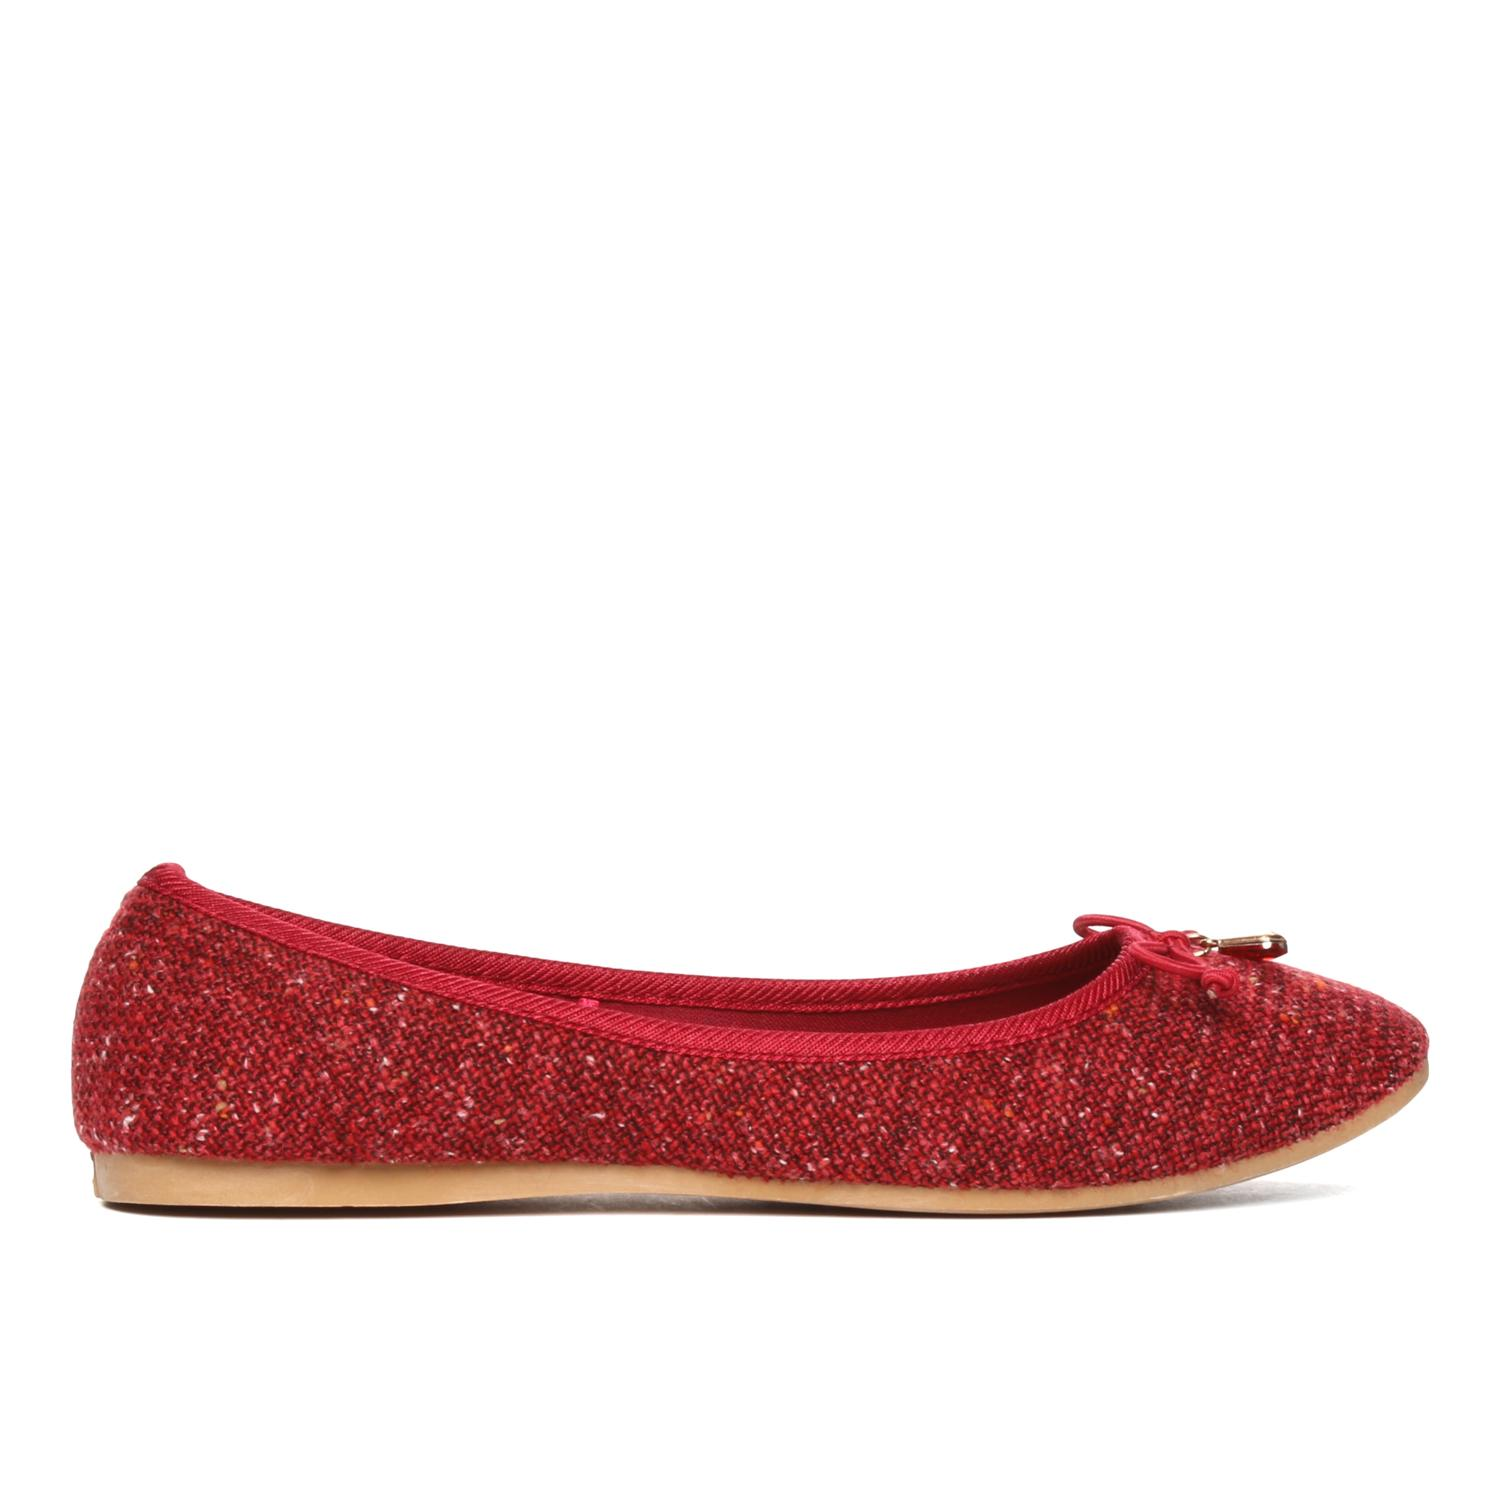 5f6d7f56b2 Product details of Solemate Ladies Kim Ballet Flats in Red